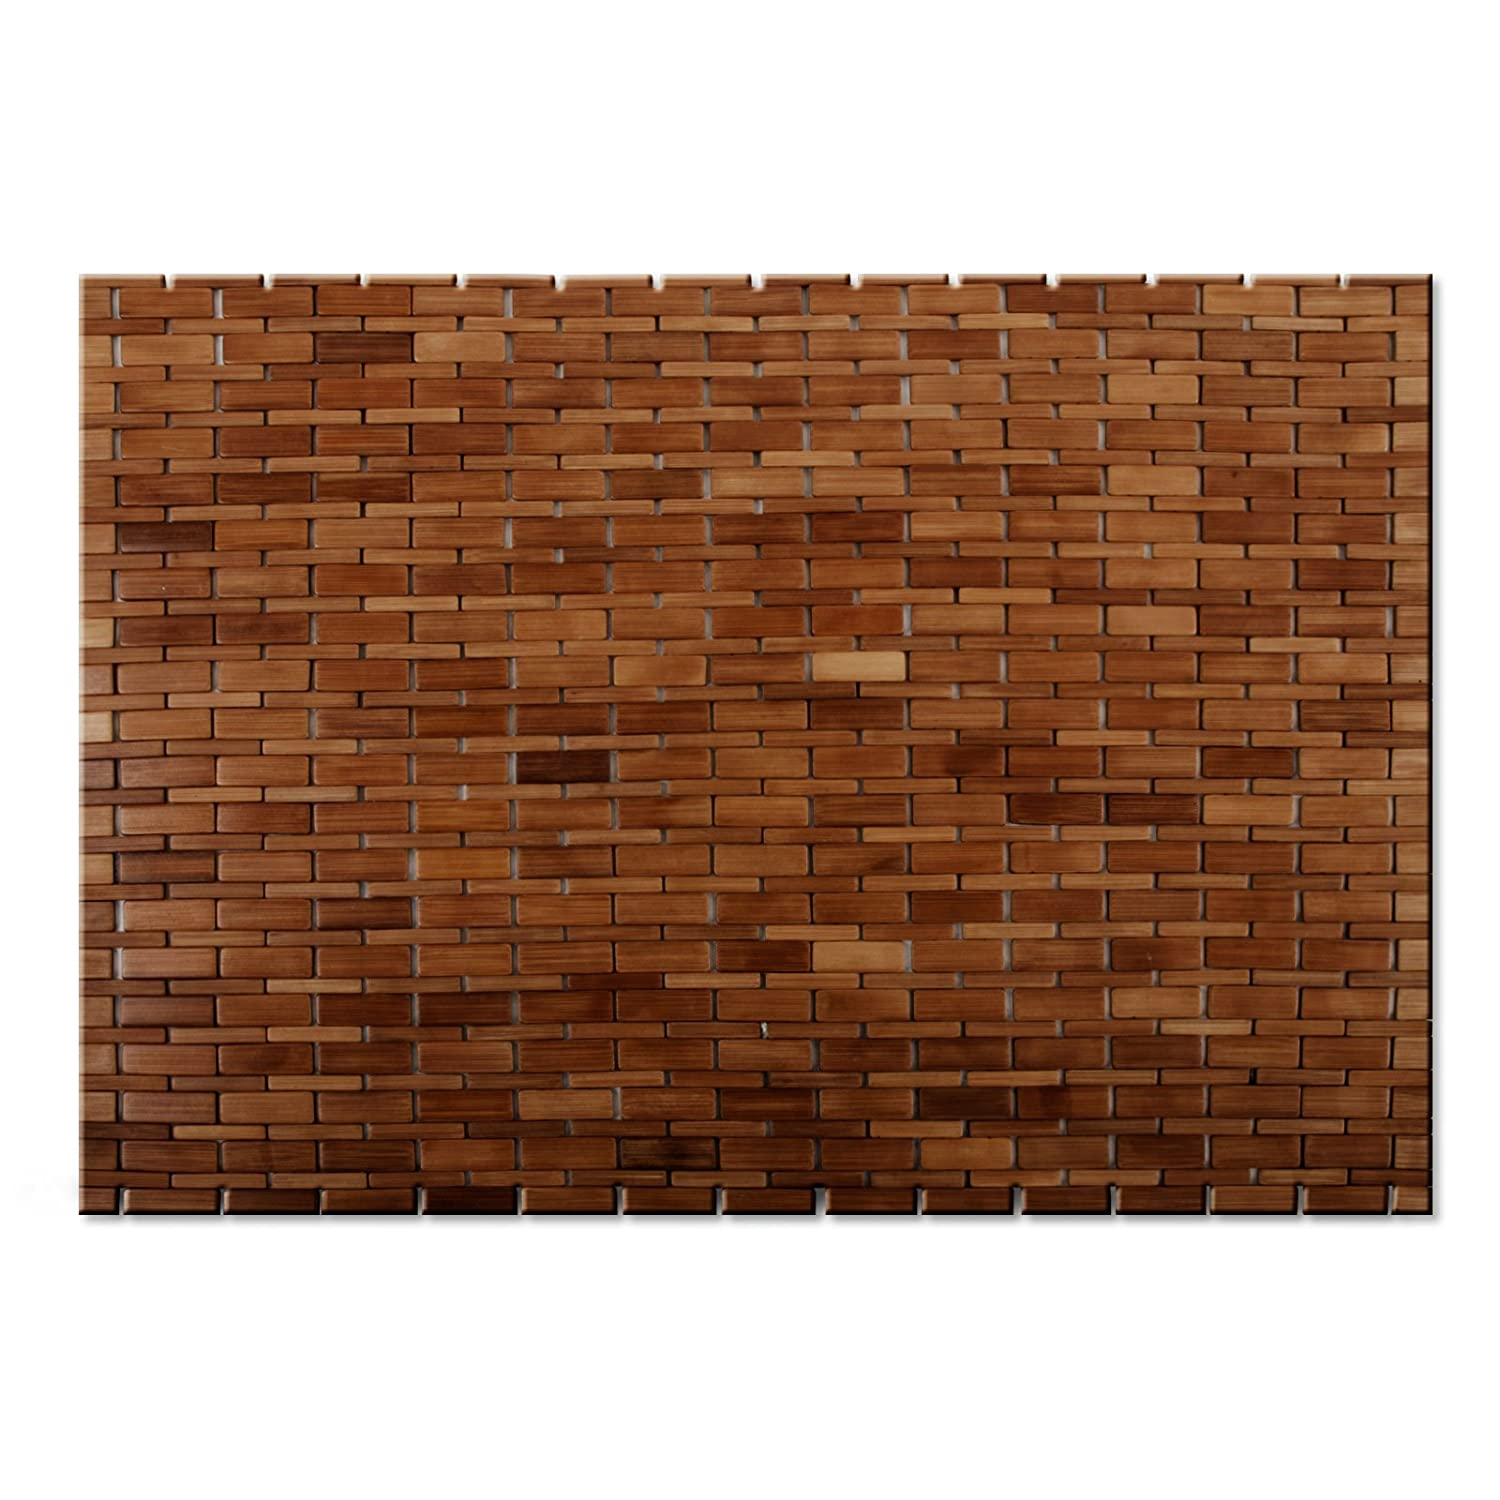 High Quality Casa Pura Luxury Bamboo Bath Mat, Chestnut Brown   60 X 90 Cm (2ft X 3ft) |  Bathroom U0026 Sauna Mat | 2 Colors Available: Amazon.co.uk: Kitchen U0026 Home